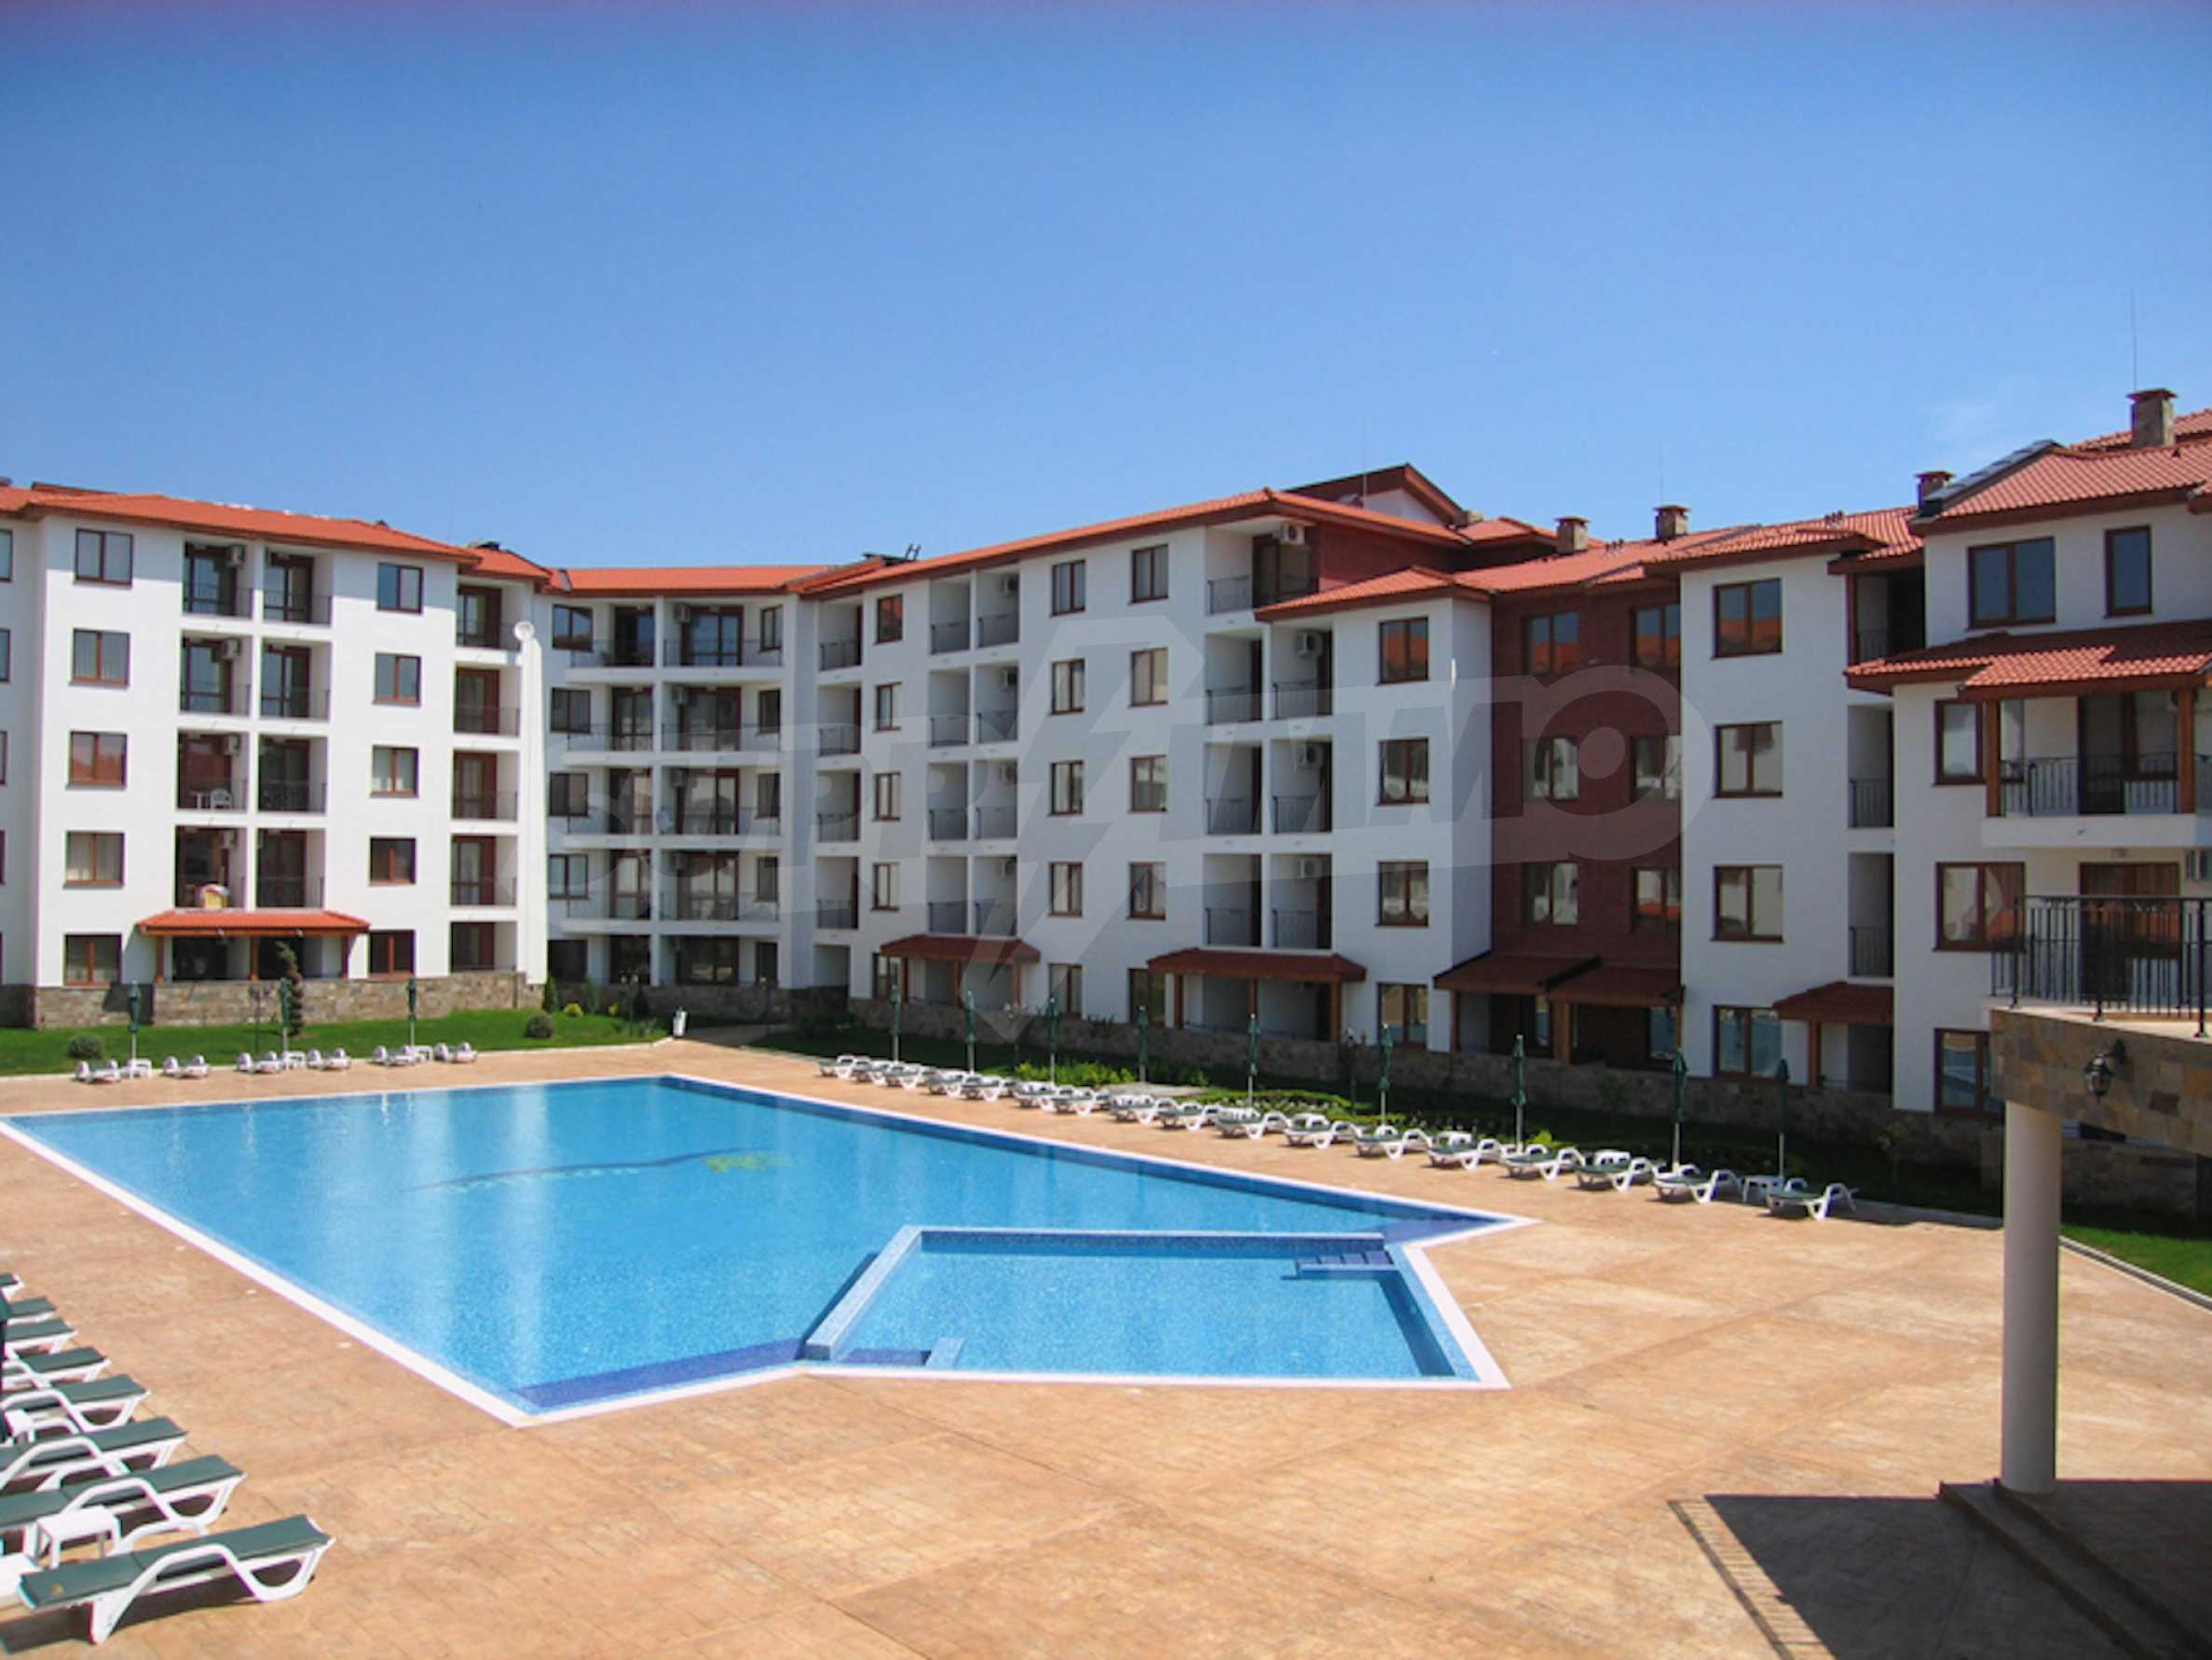 Comfortable apartment in a complex with pool 200 meters from the beach 1